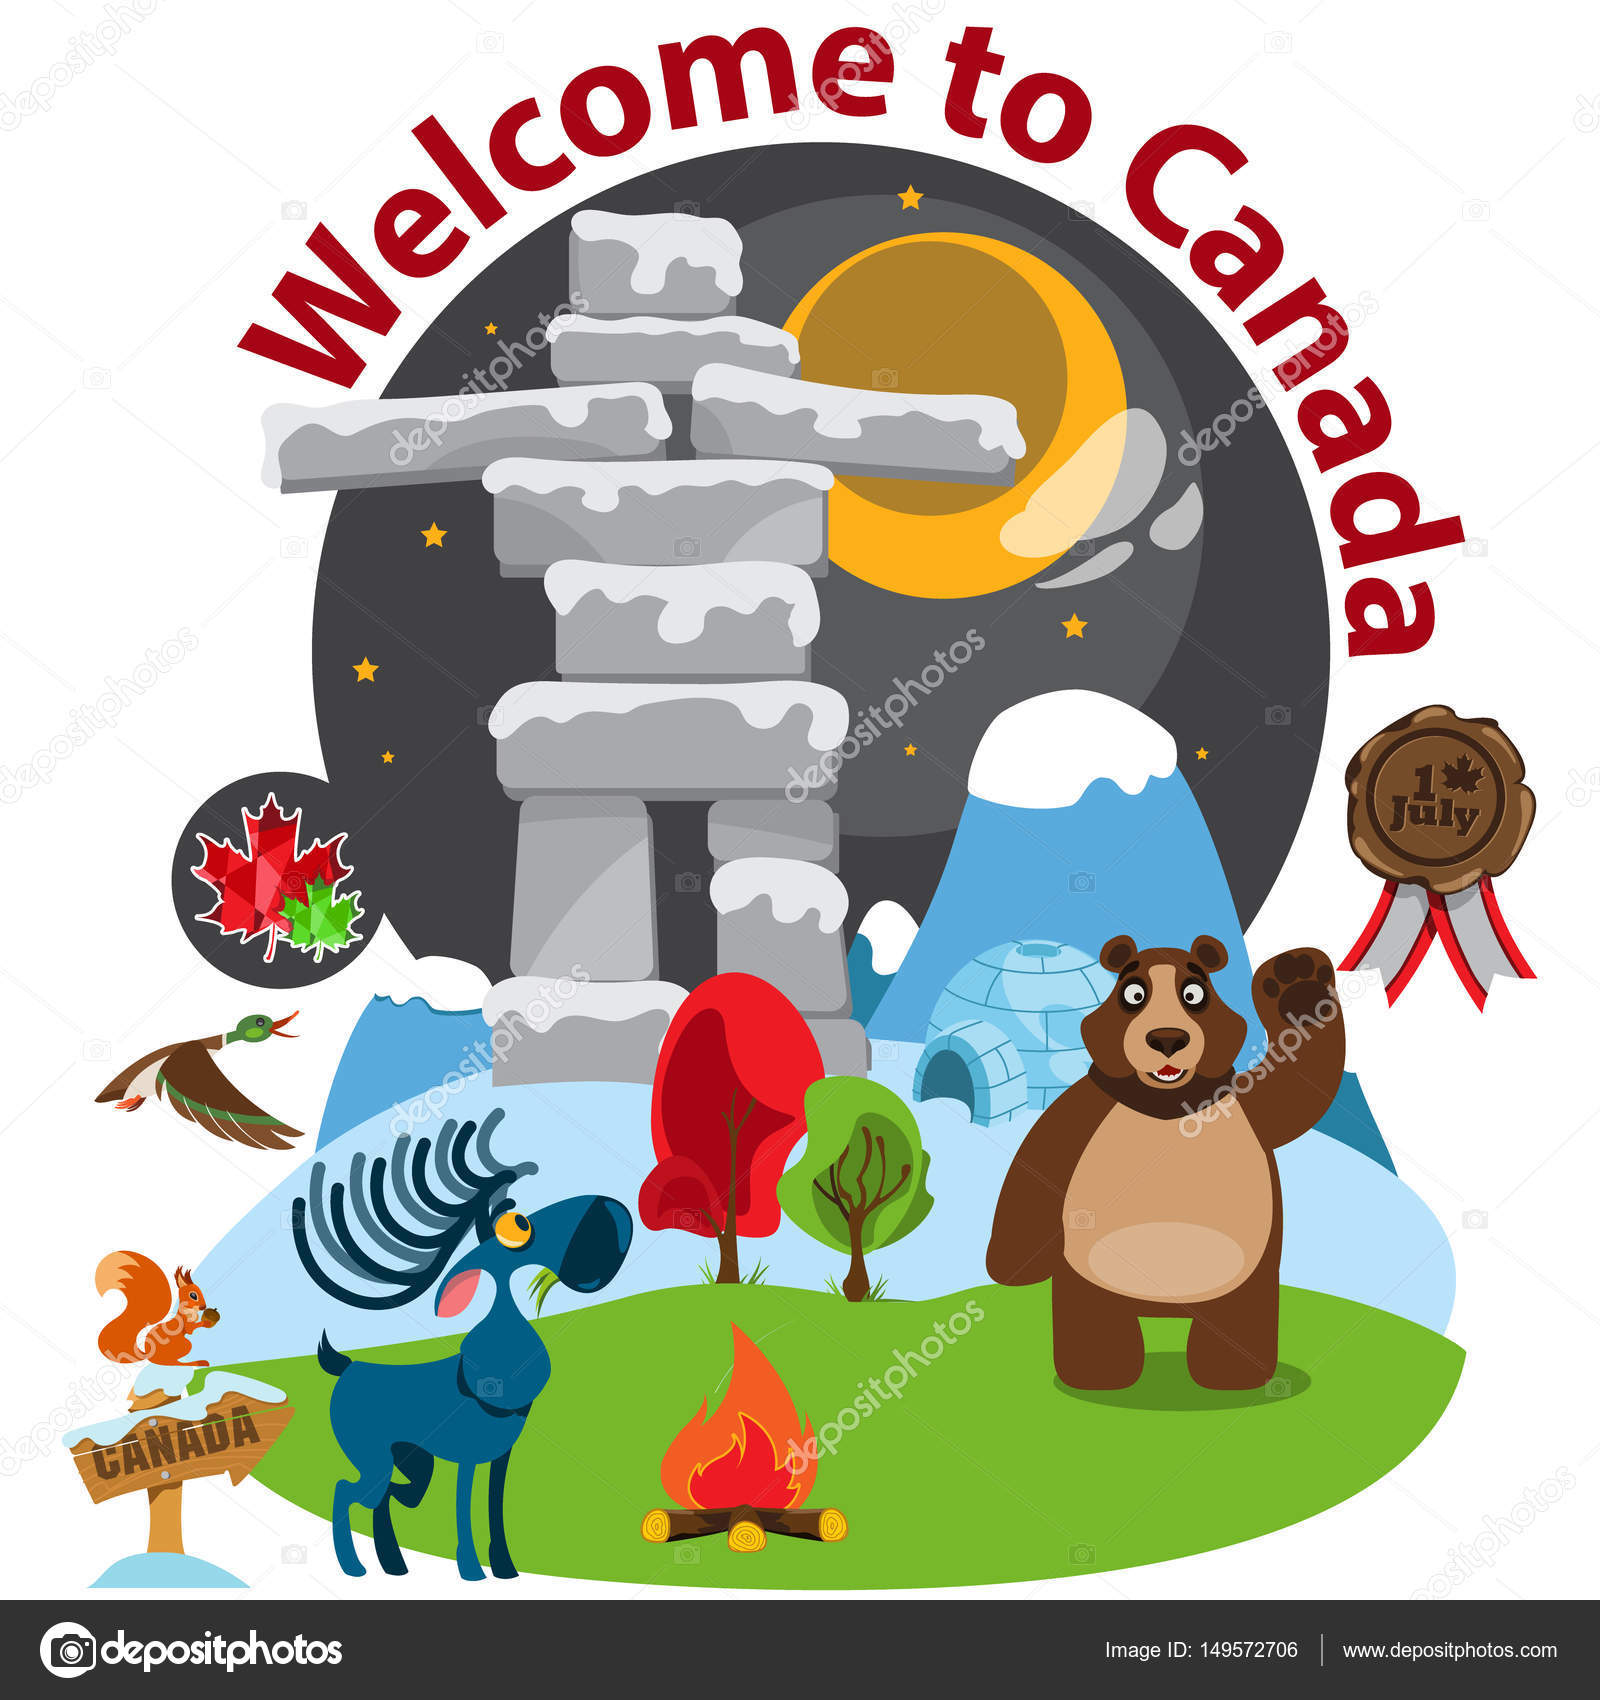 Welcome banner with symbols of canada stock vector filkusto welcome banner with symbols of canada stock vector biocorpaavc Gallery